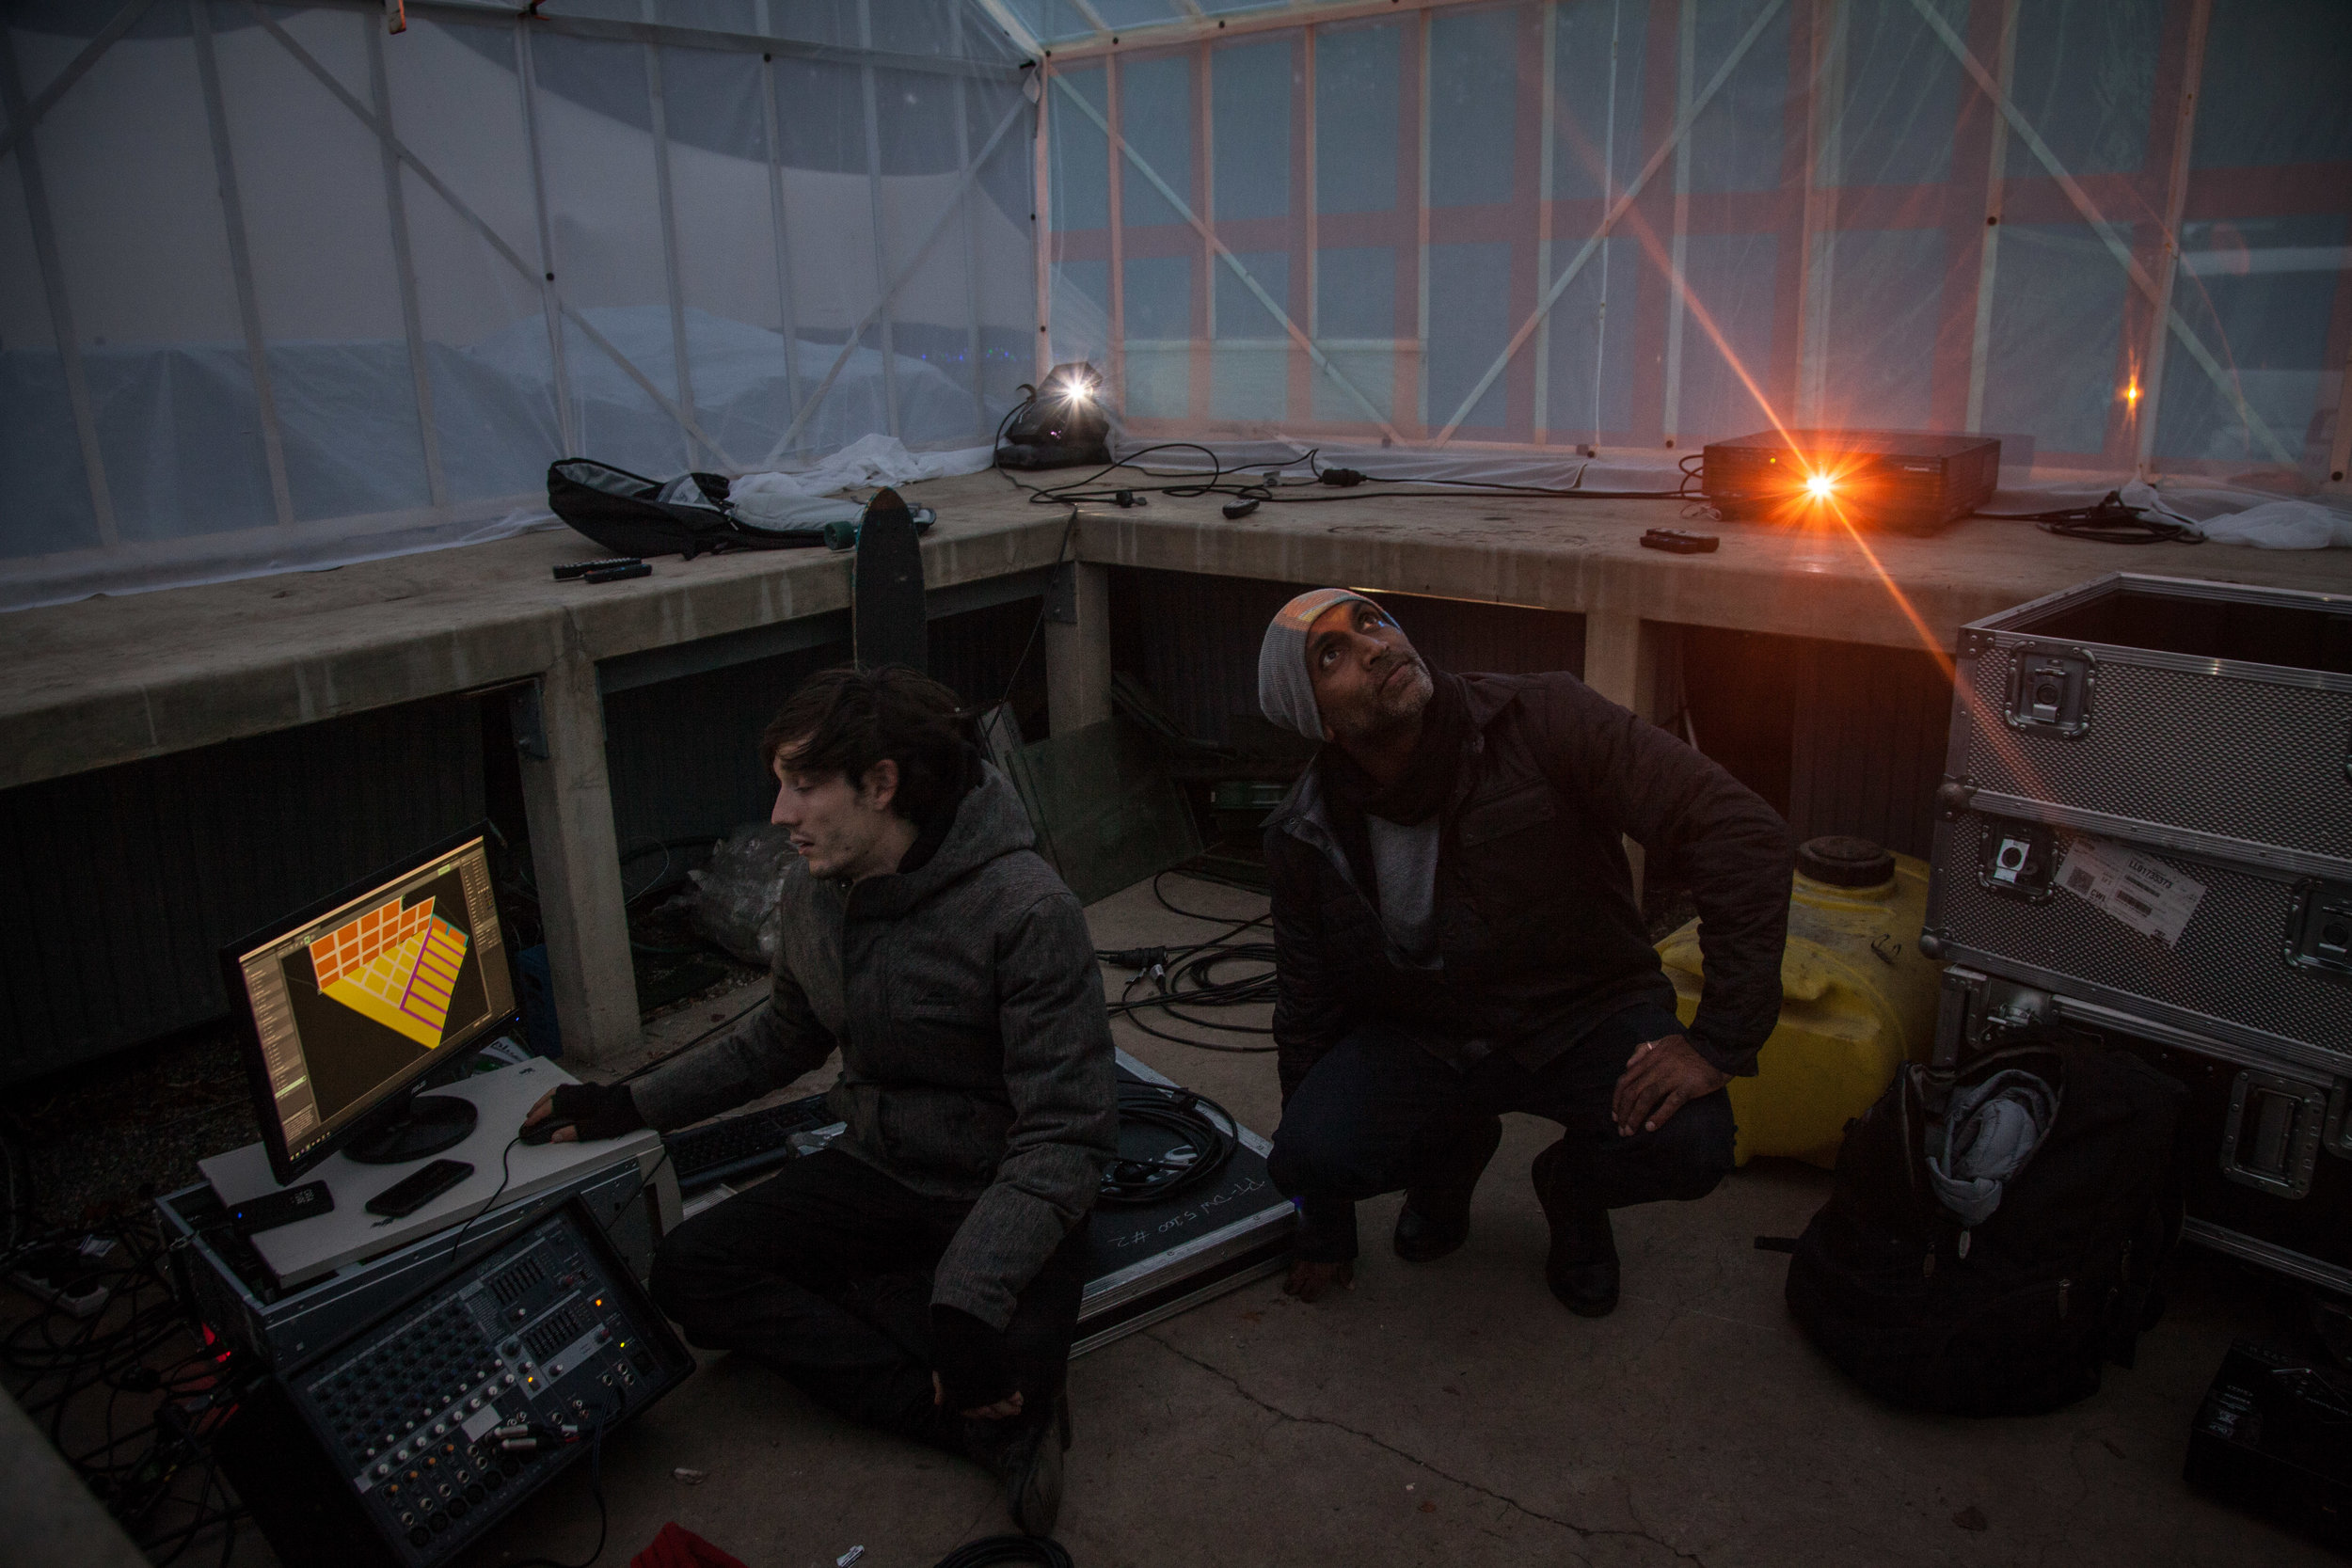 Samuel(Nocturnal) & Lakshman(Creature) video mapping the glass house - Photo Credit: Sophia Jenny